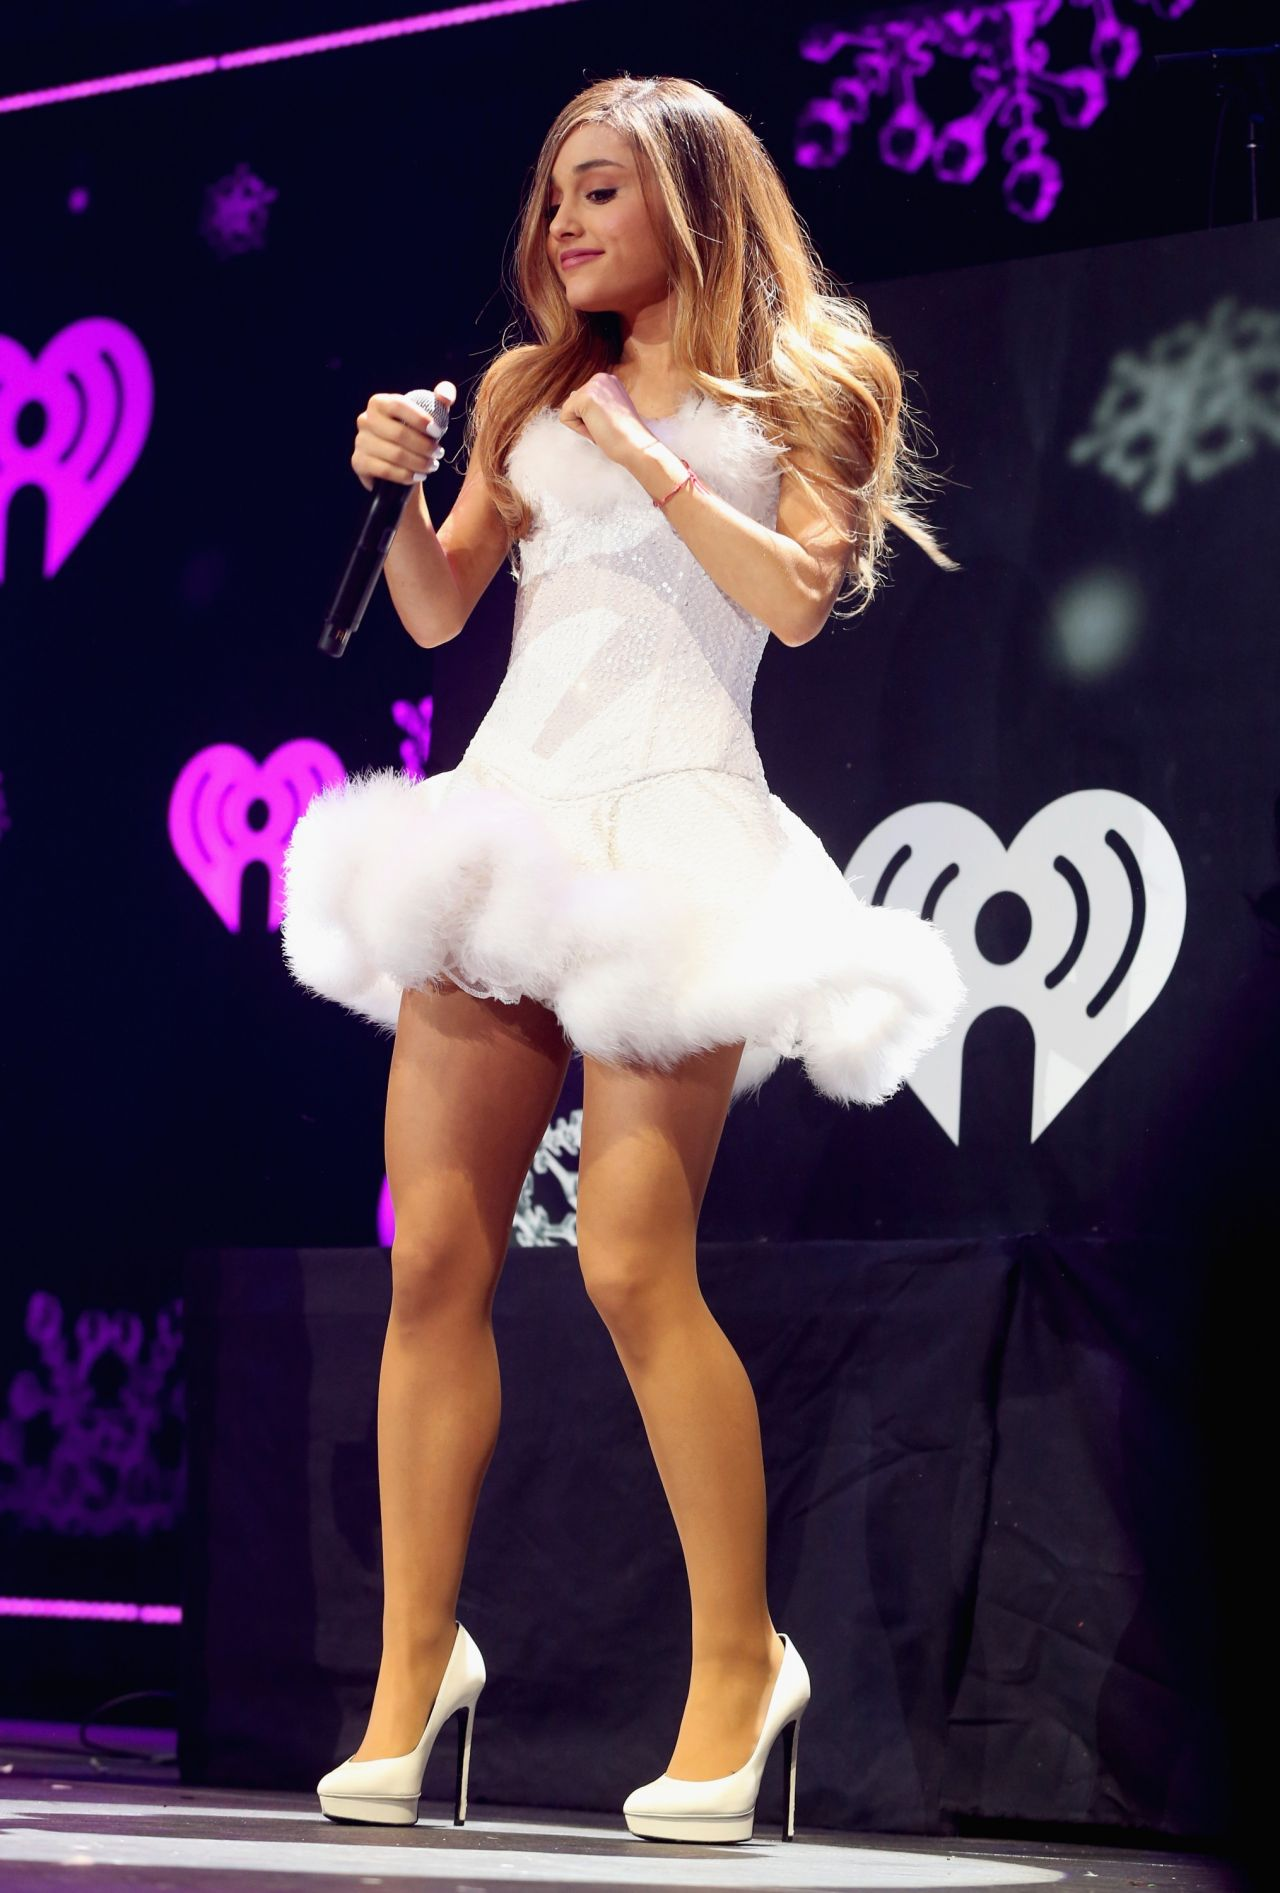 ariana-grande-2013-kiis-fm-s-jingle-ball-in-los-angeles_1